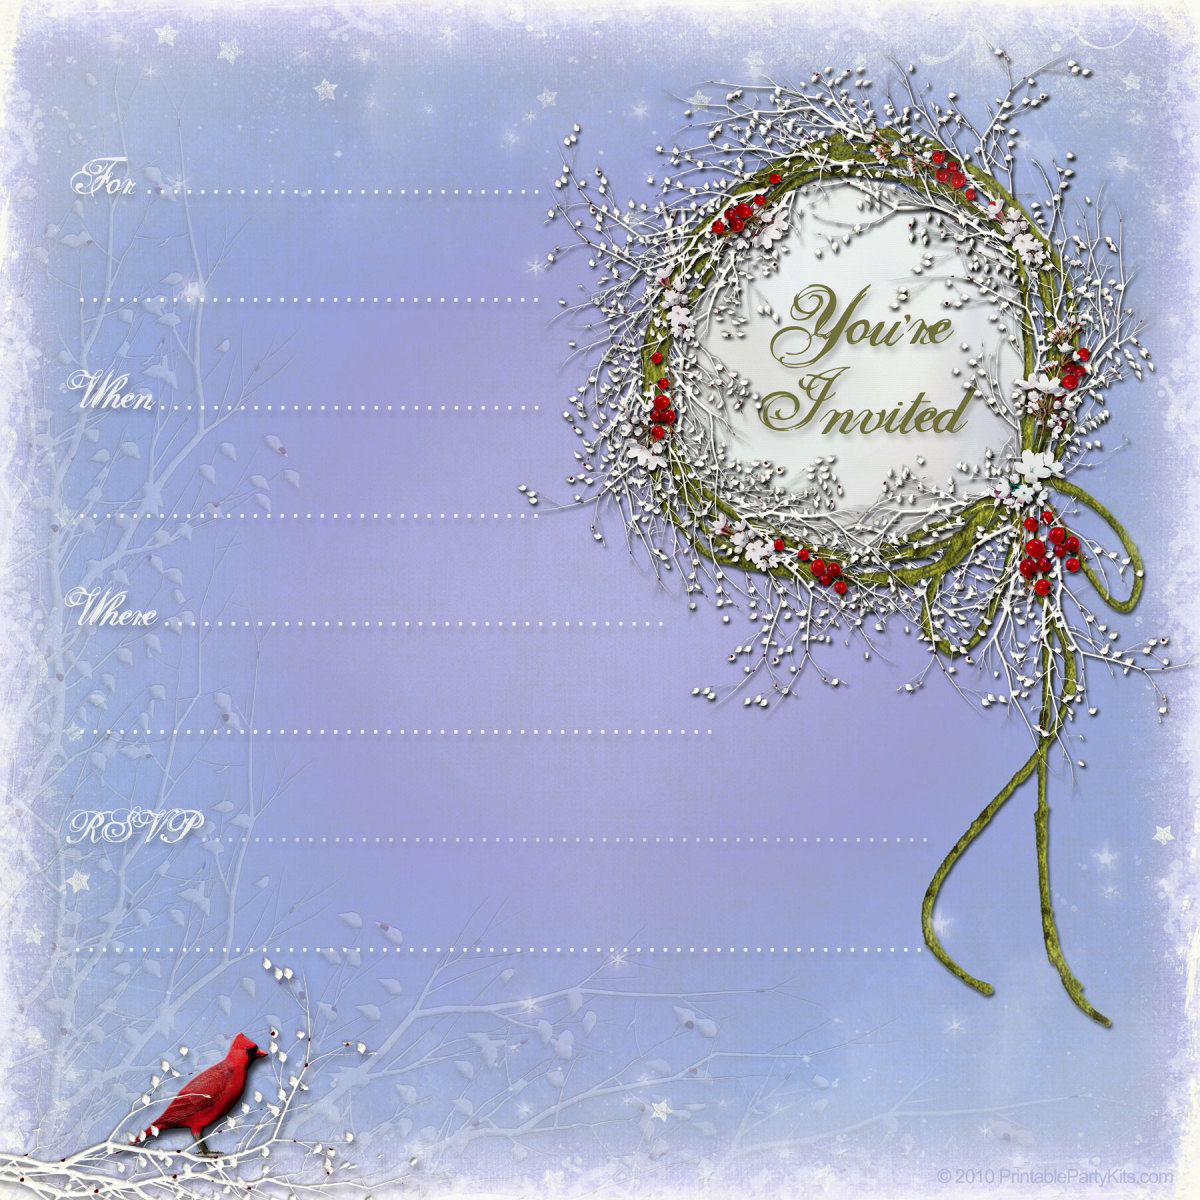 free winter invitations: winter wreath with berries and cardinal bird